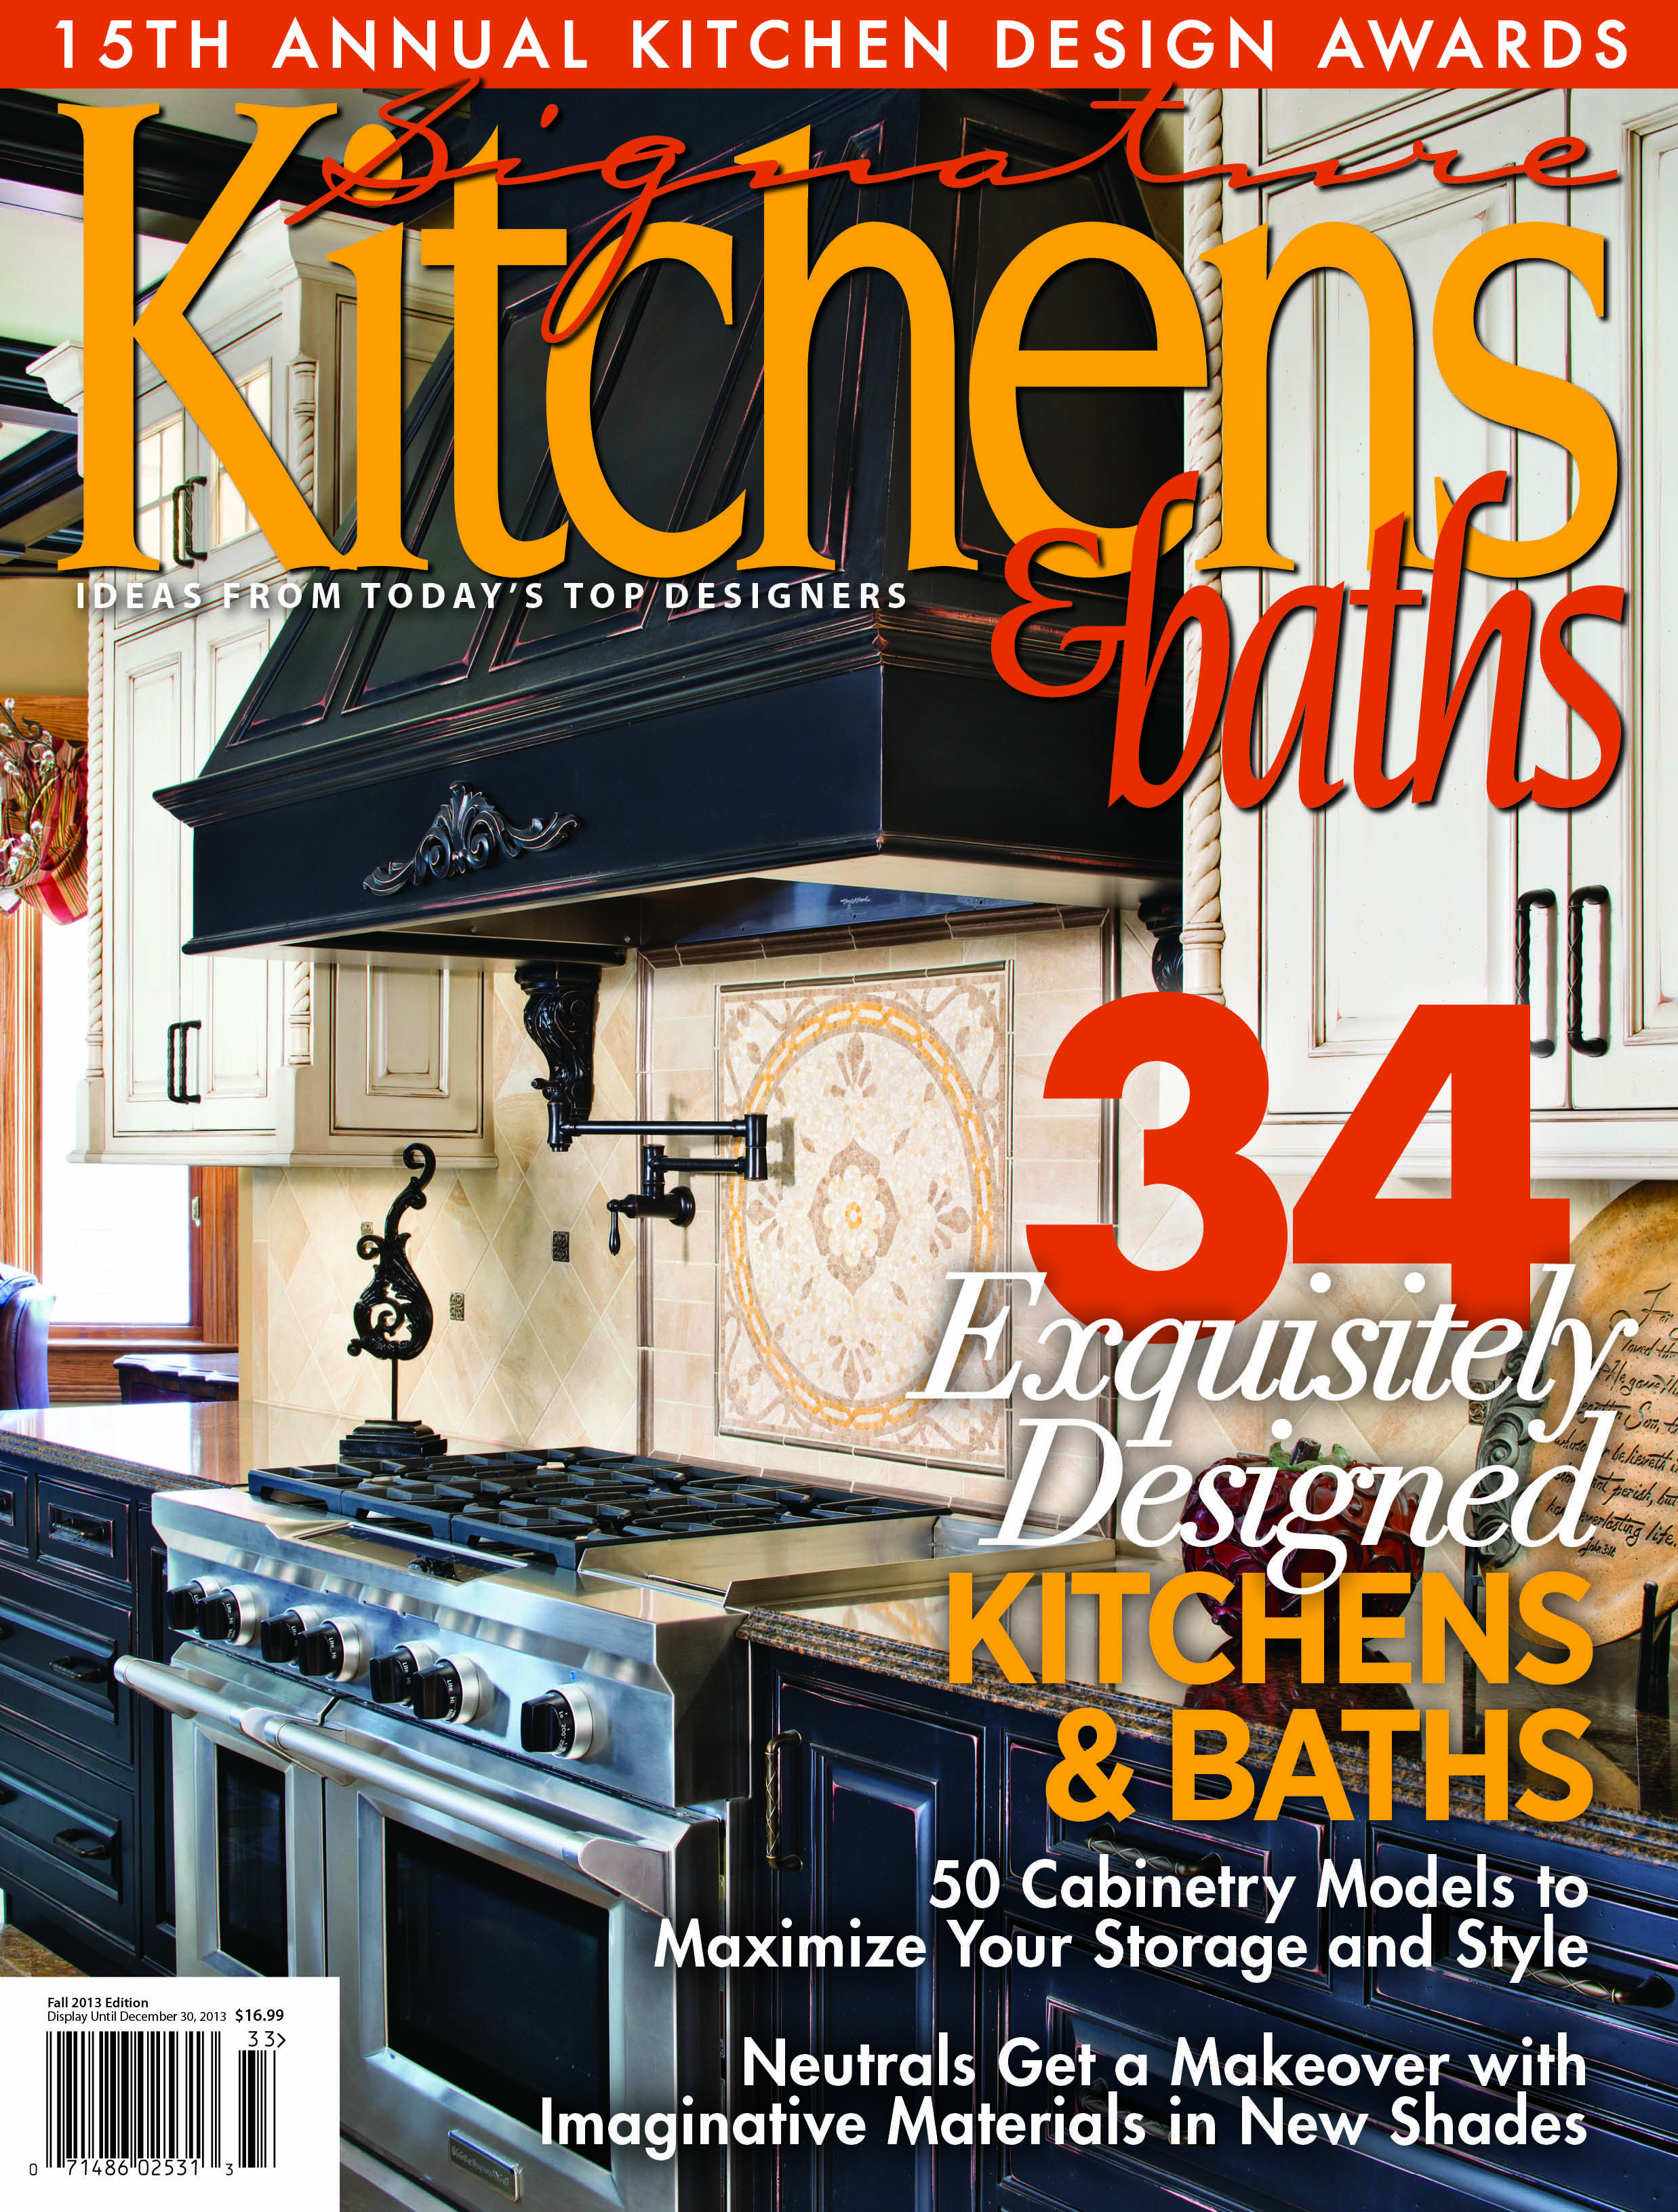 Signature Kitchens U0026 Baths #Magazine Cover Of Fall 2013 Features This  Beautiful Dura Supreme #